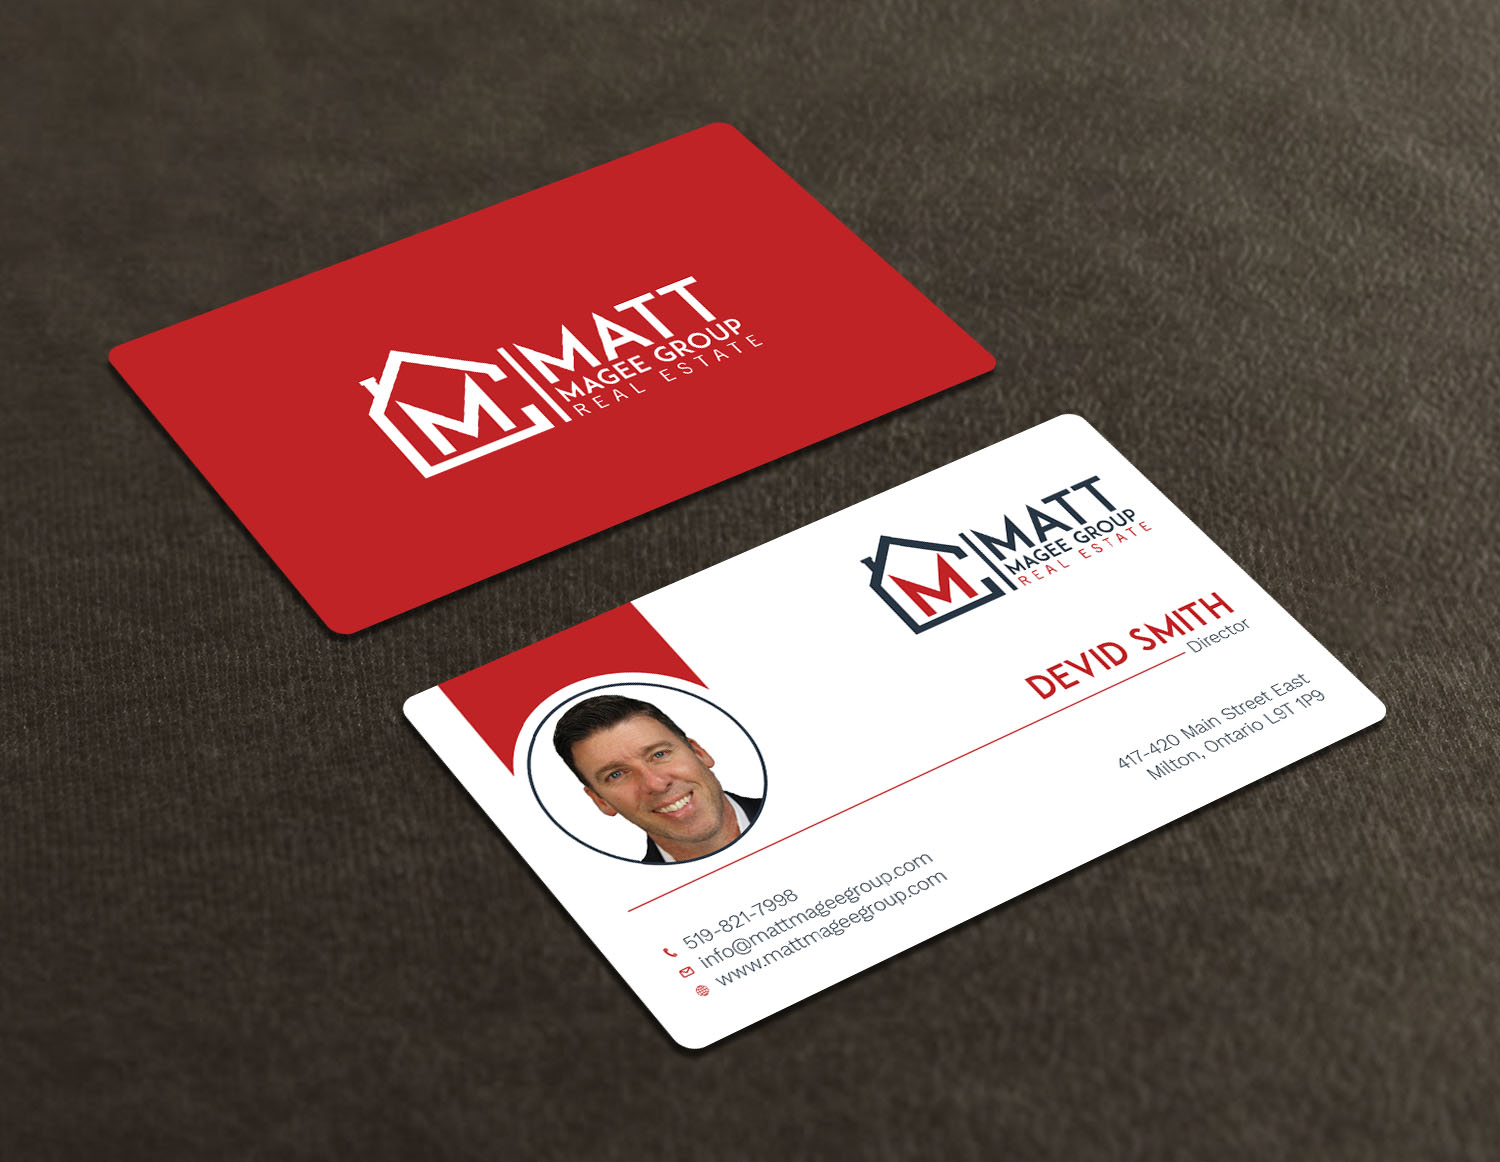 Bold modern real estate agent business card design for a company bold modern real estate agent business card design for a company in united states design 17179735 reheart Gallery